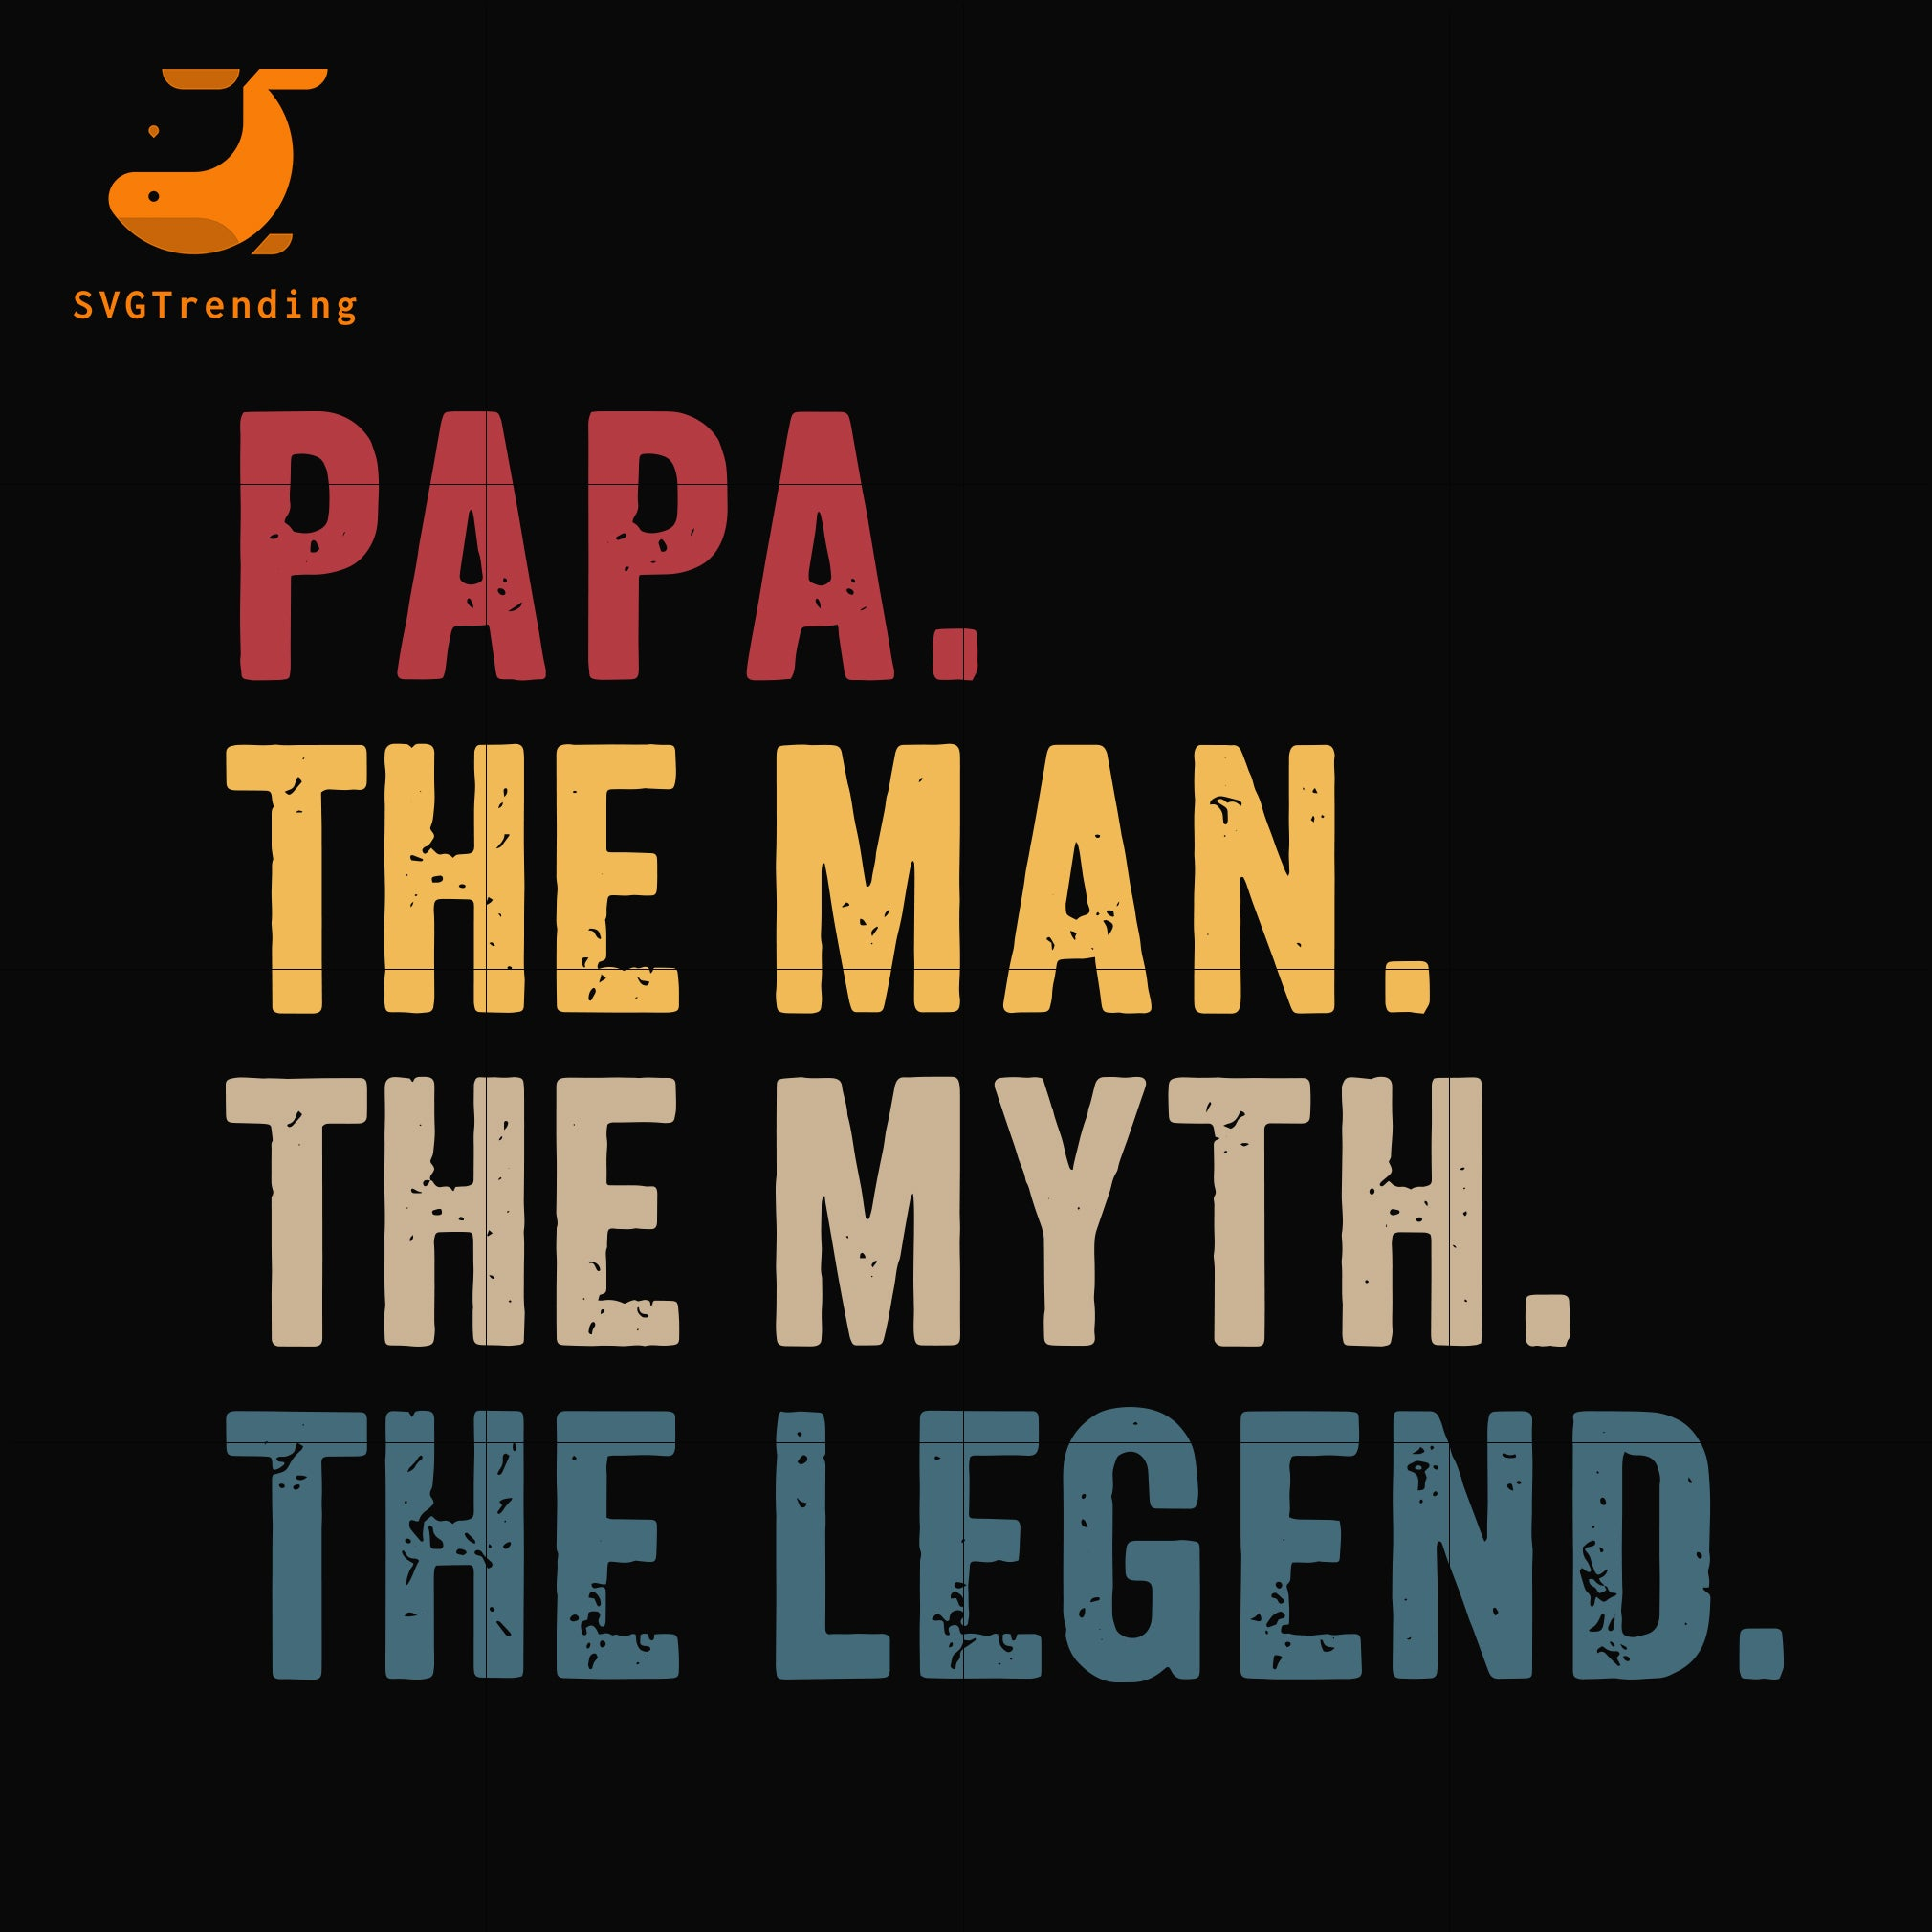 Papa the man, the myth, the legend svg, png, dxf, eps, digital file FTD129